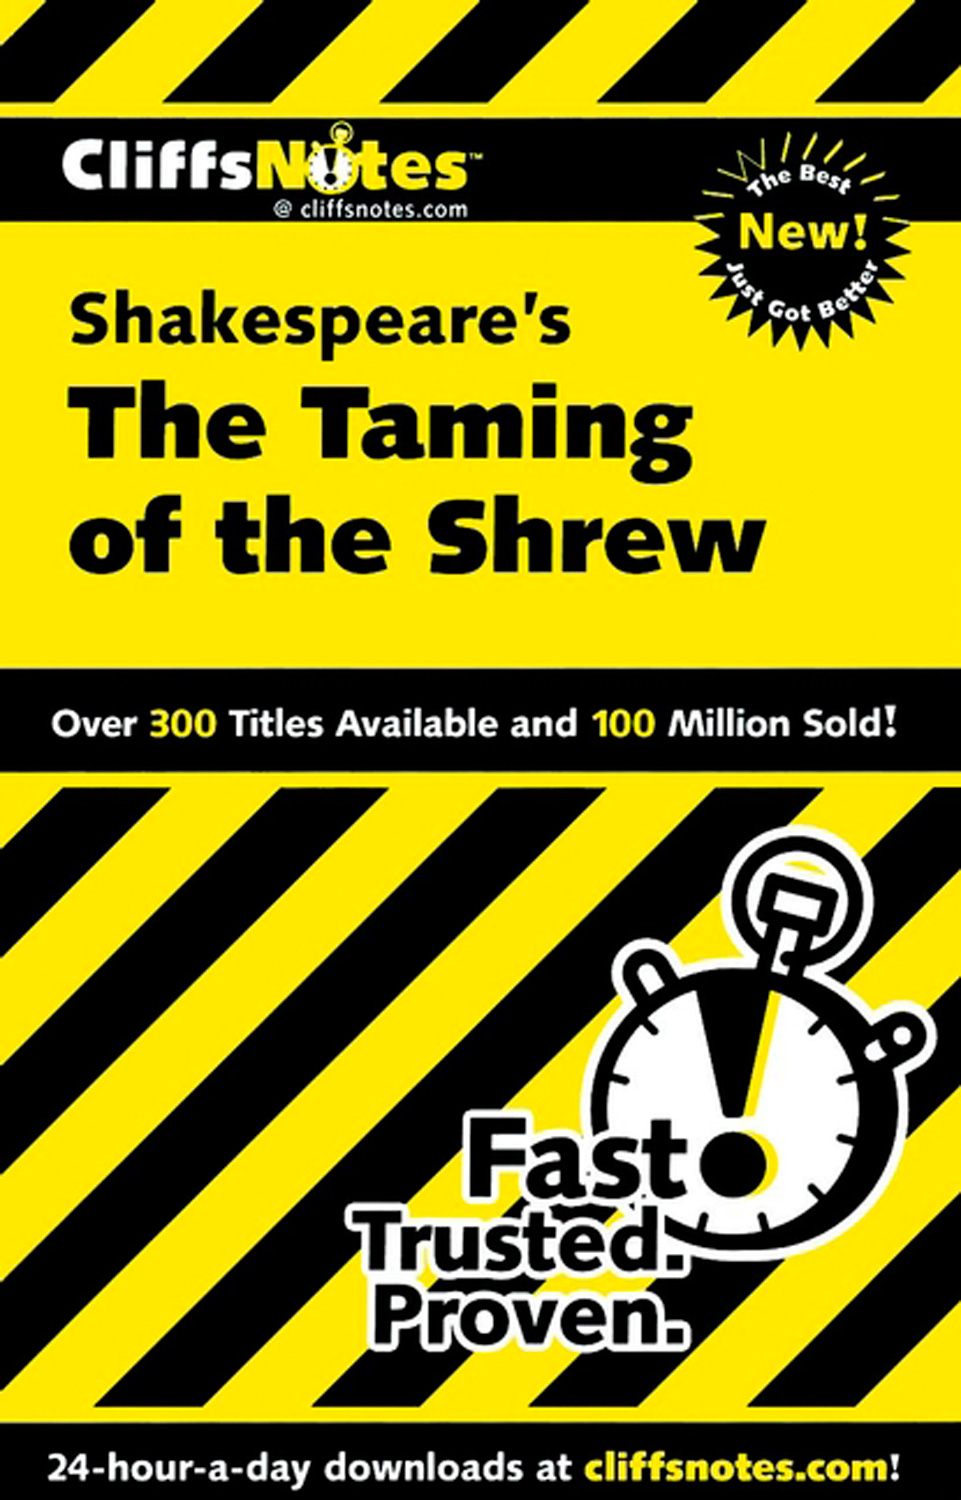 CliffsNotes on Shakespeare's The Taming of the Shrew-9780764586736